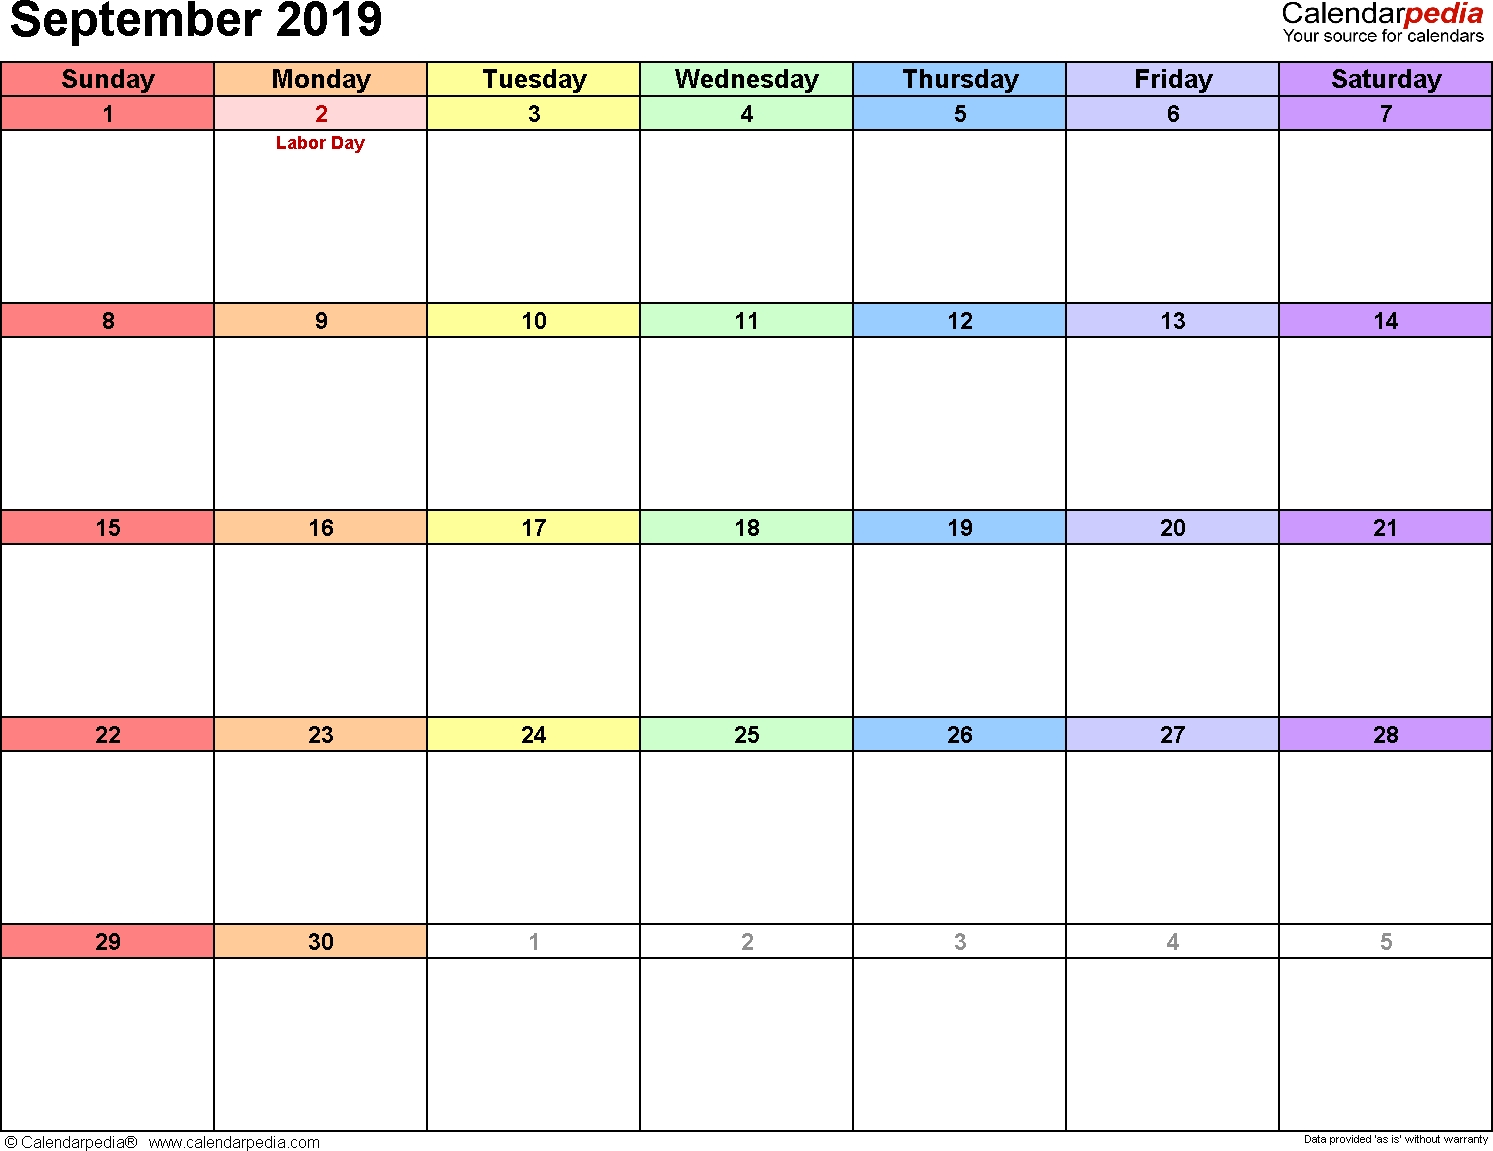 Calendarpedia - Your Source For Calendars-Monthly Calendar August Through December 2020